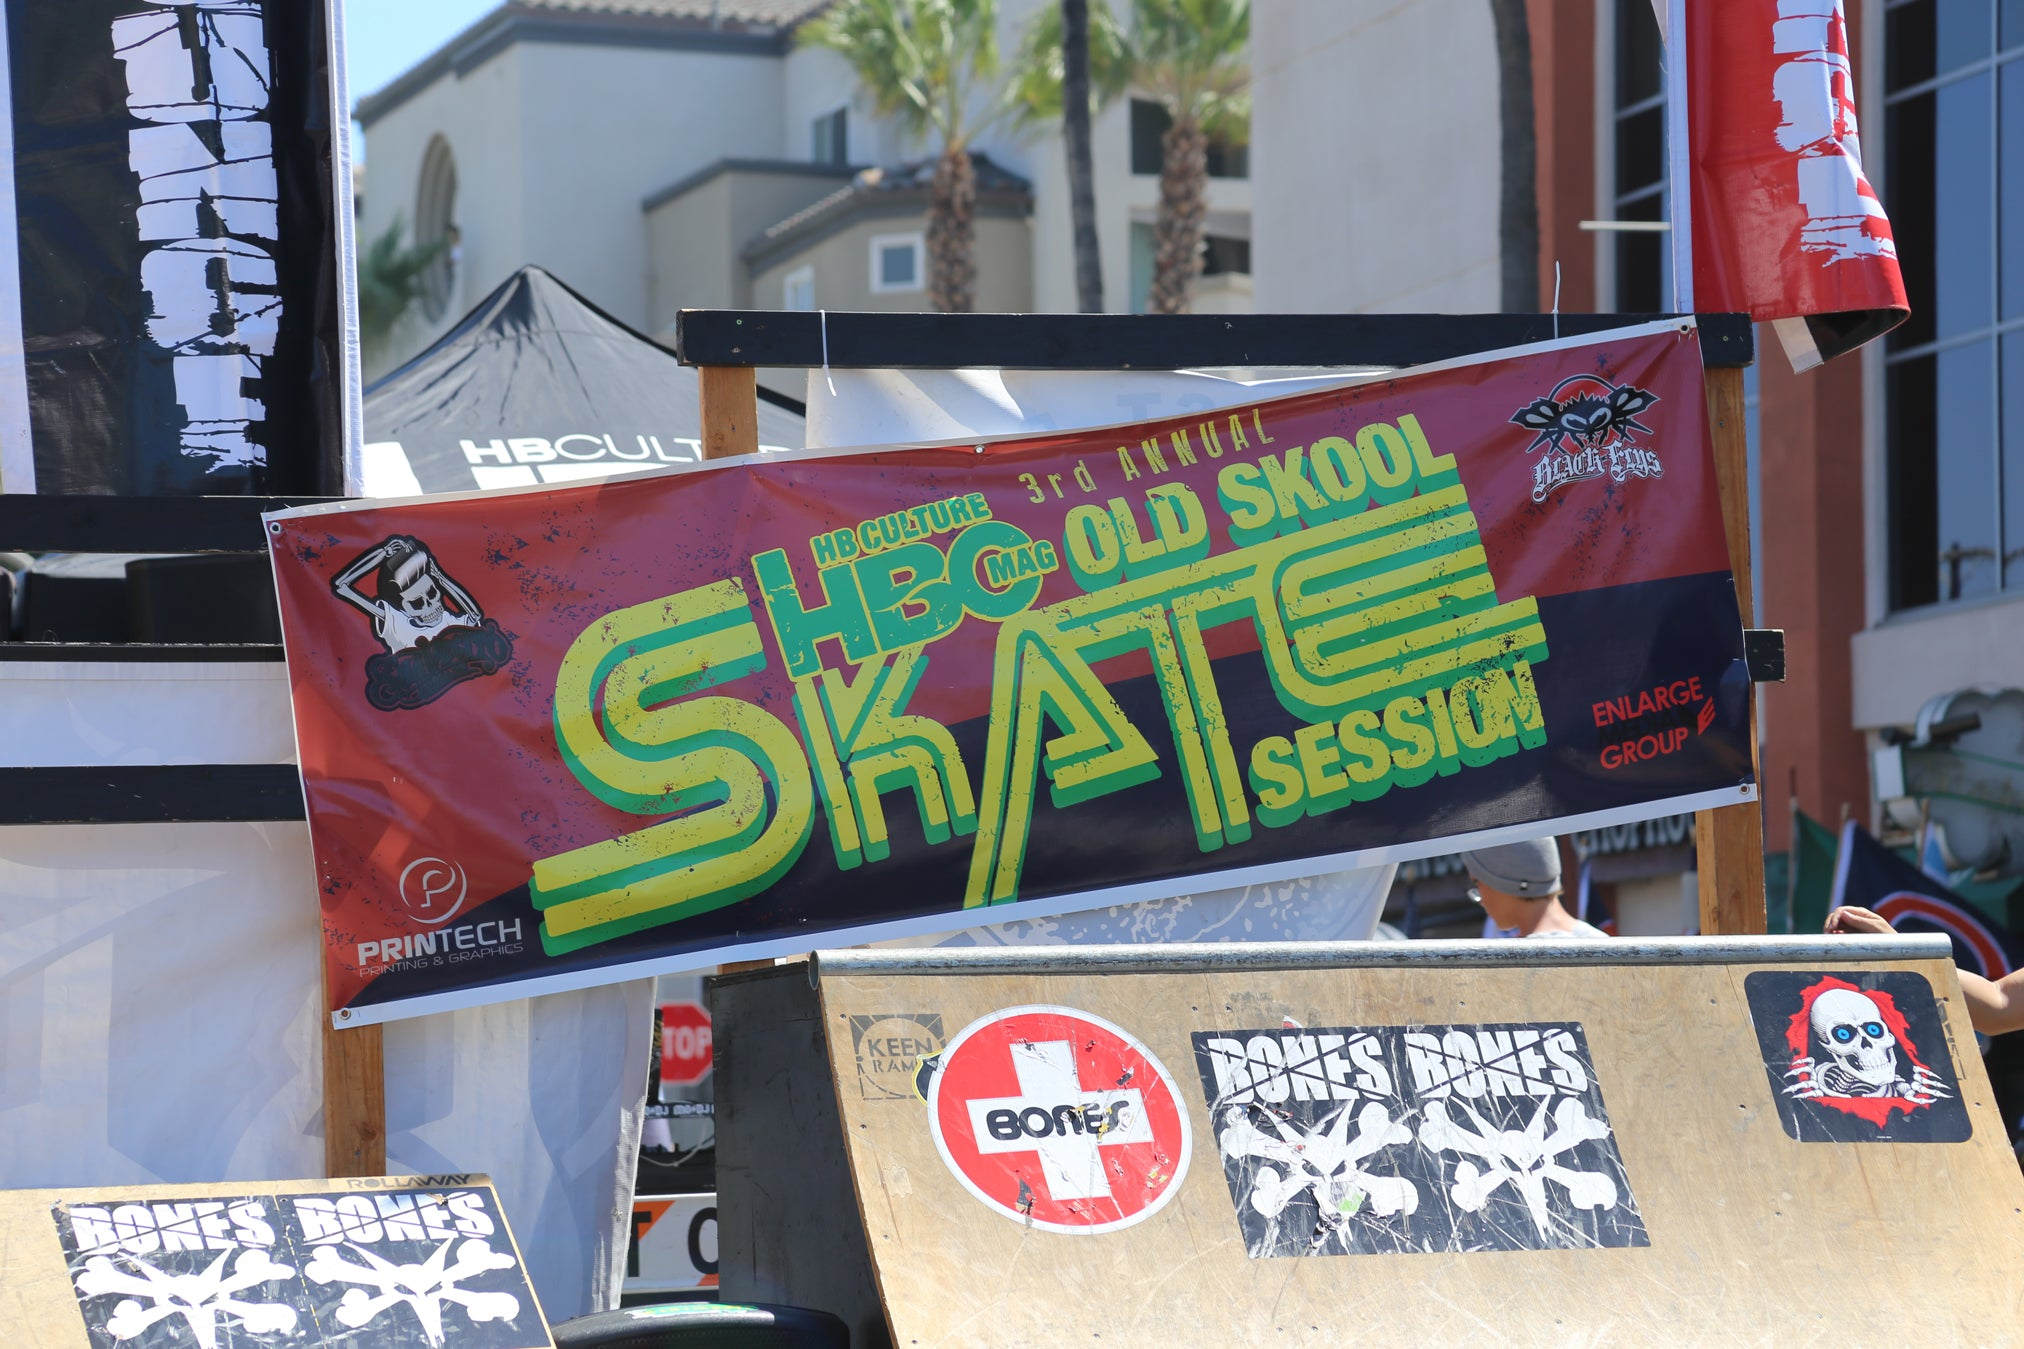 Suavecito X HB Cult Old Skool Skate Session